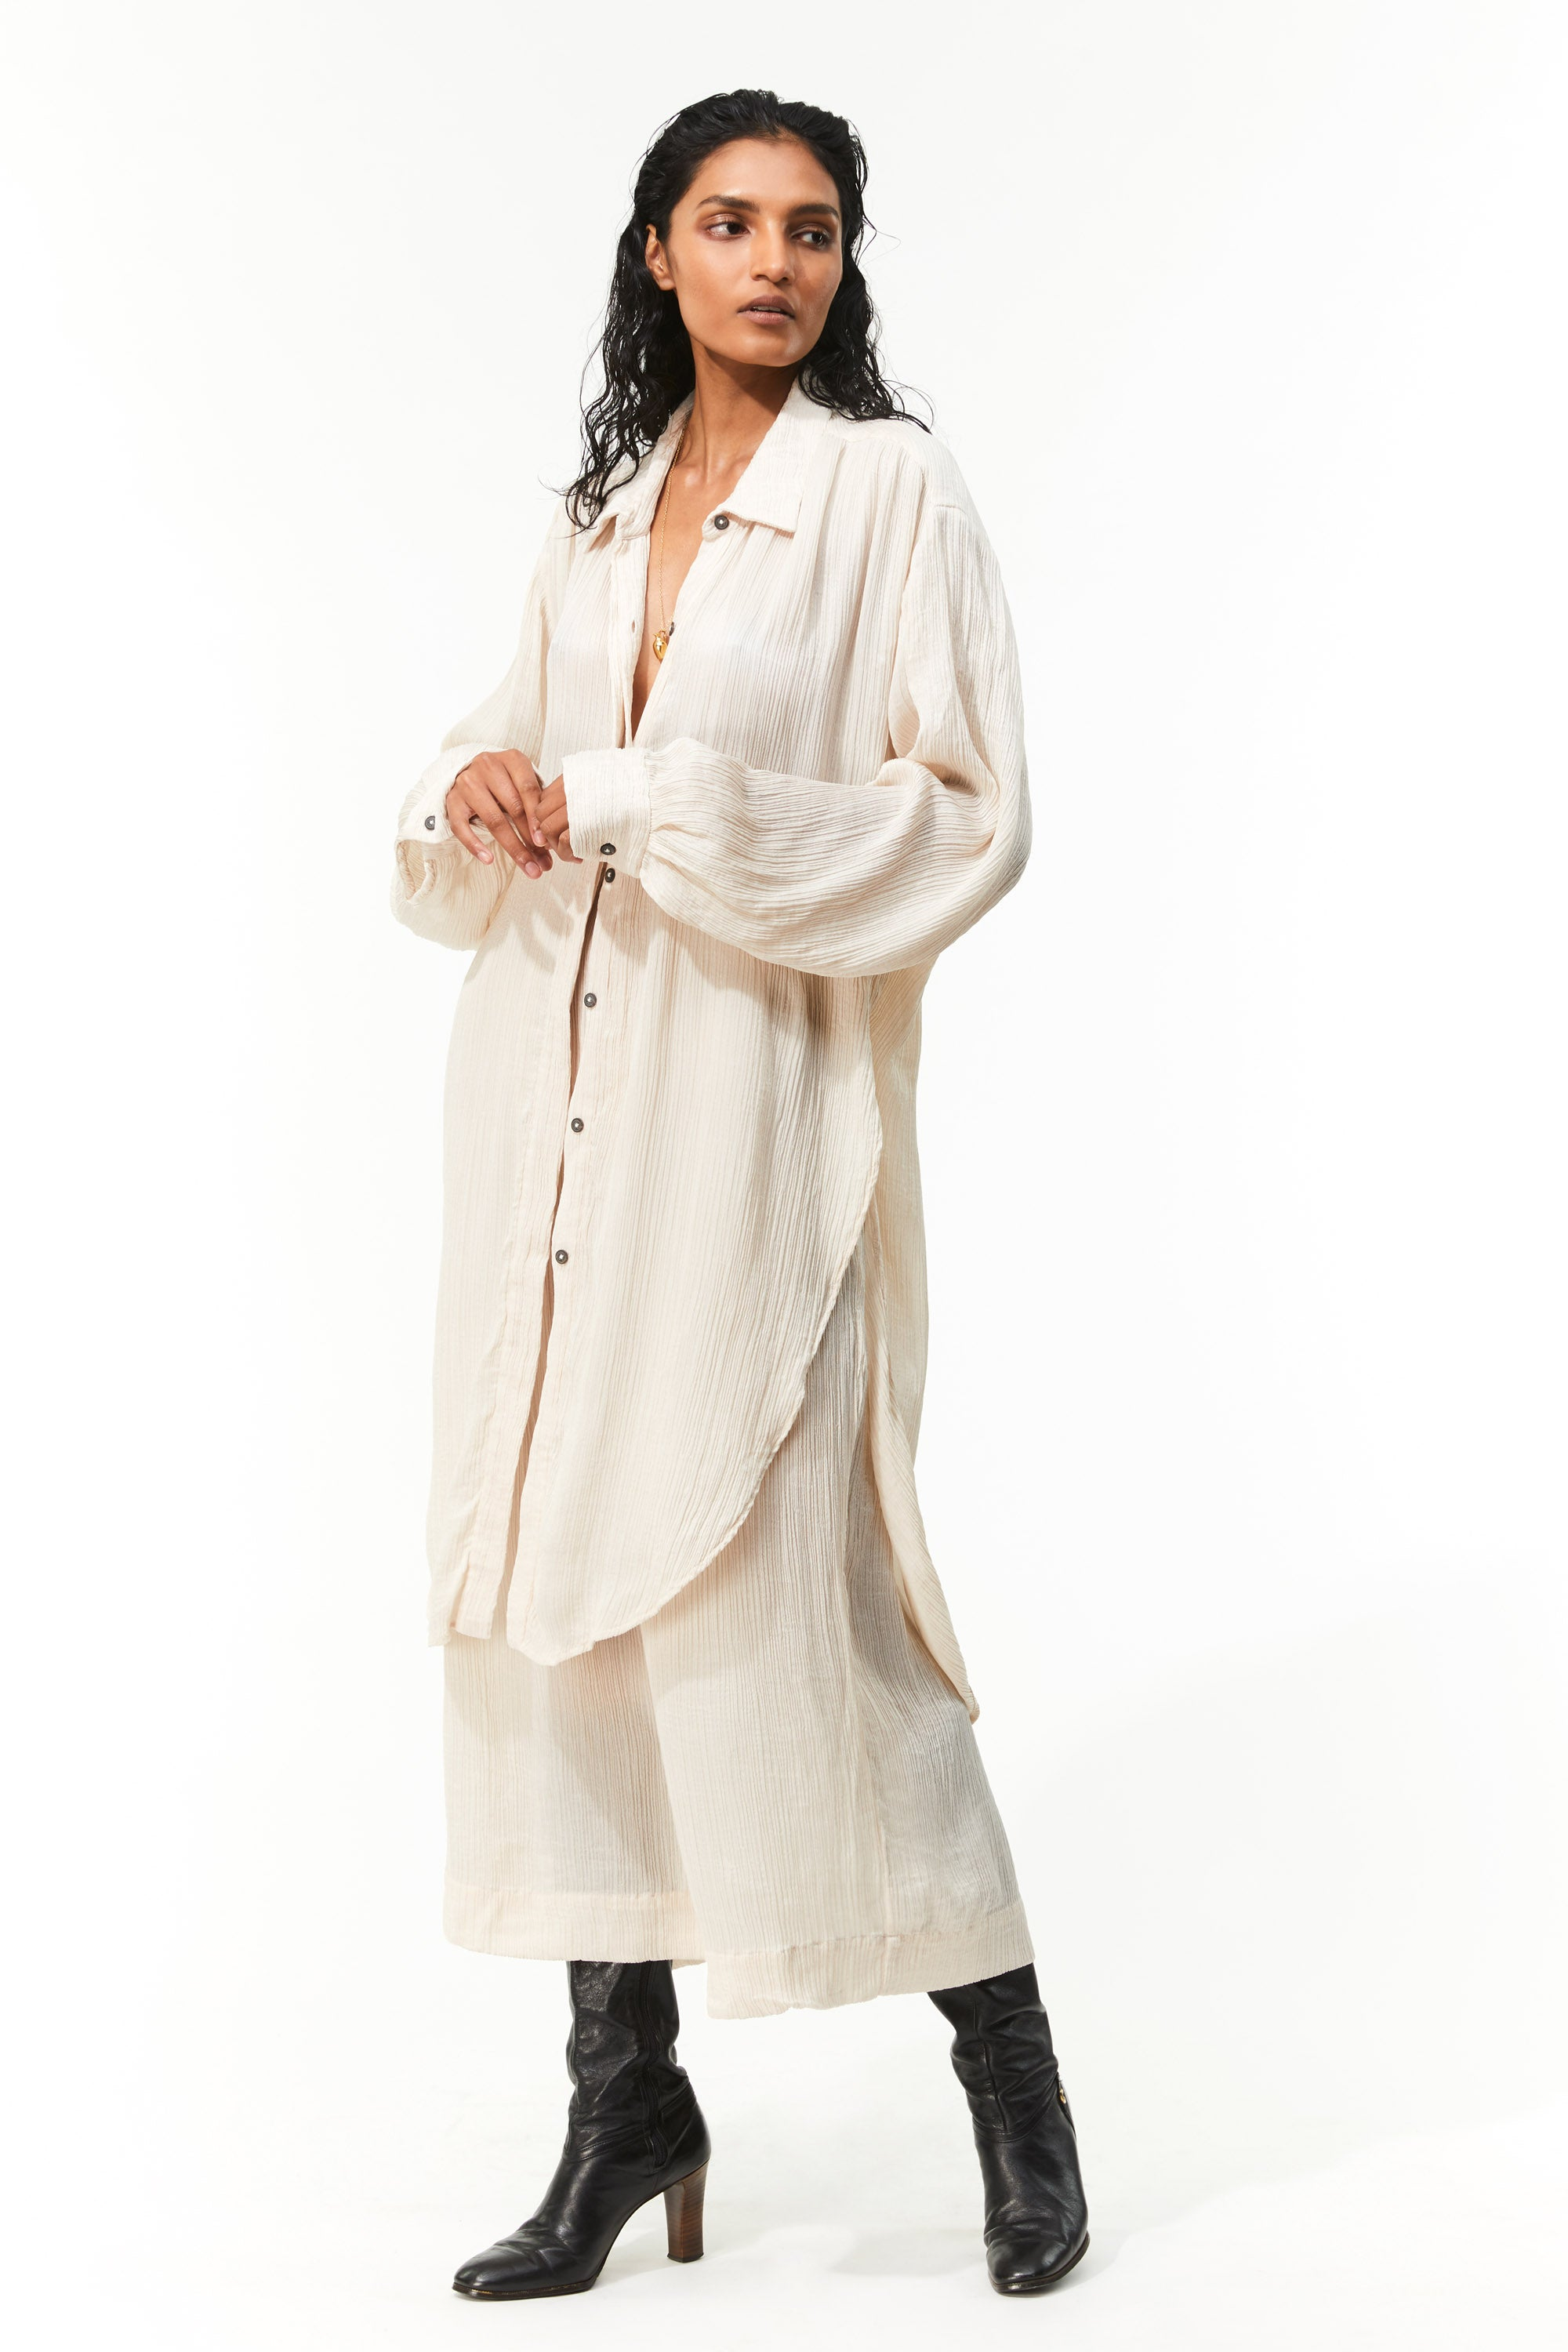 Mara Hoffman Ivory Agata Dress in Tencel Lyocell (untucked)